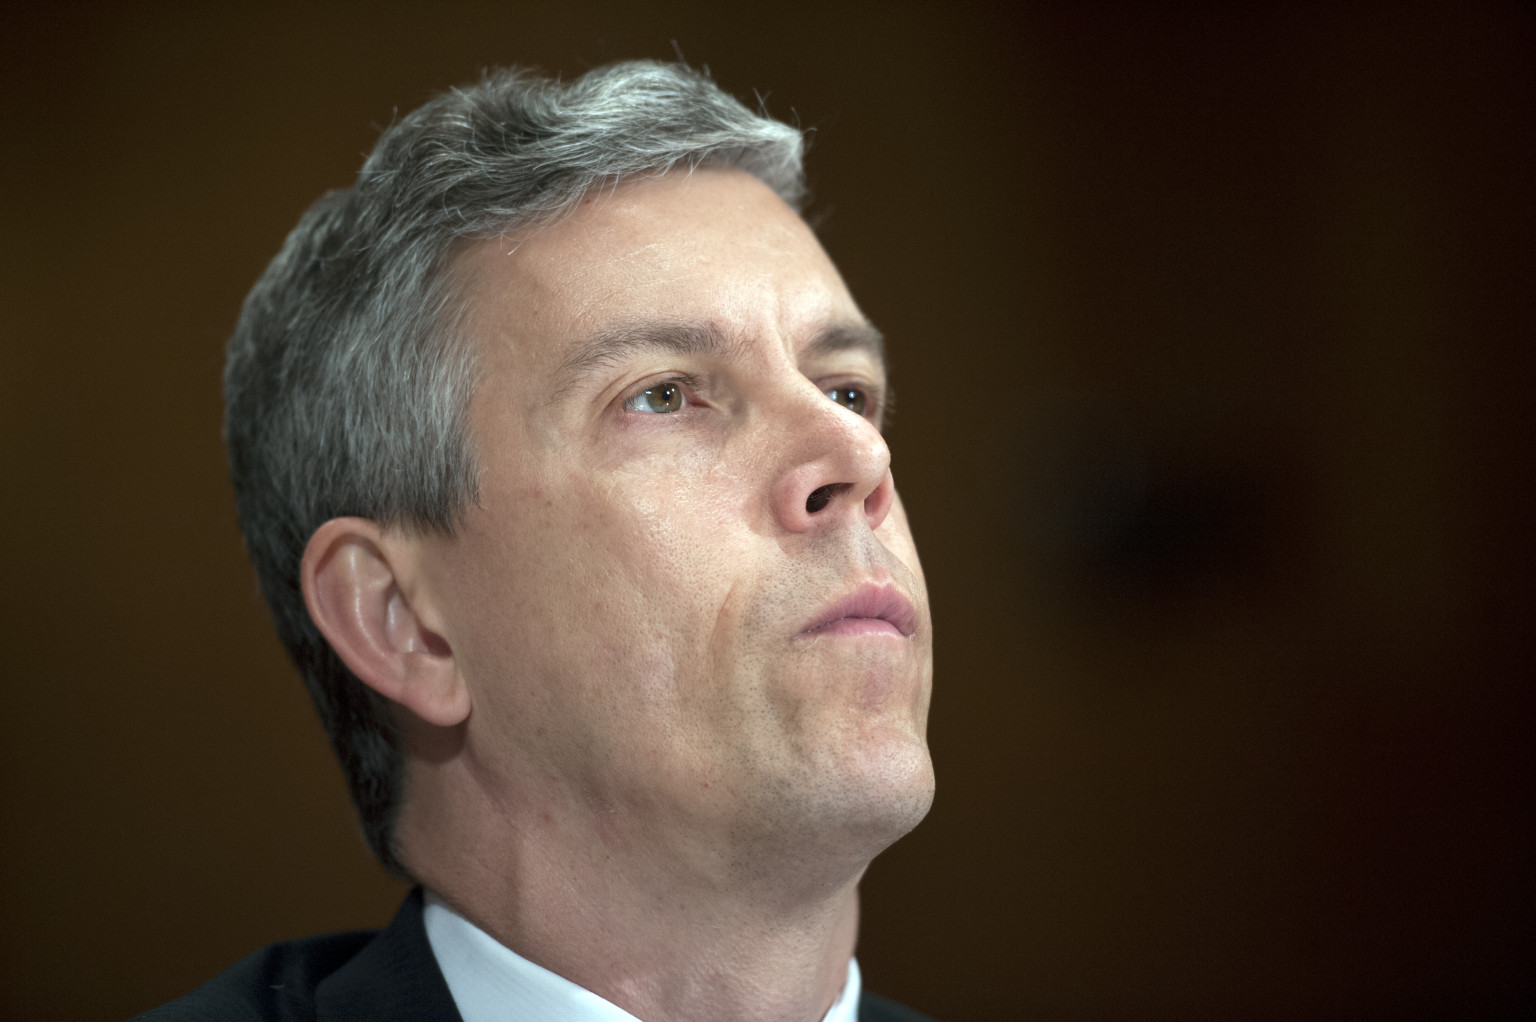 arne duncan senior thesis Arne duncan's wiki: arne starkey duncan[39] (born november 6 his senior thesis, for which he took a year's leave to do research in the kenwood neighborhood.